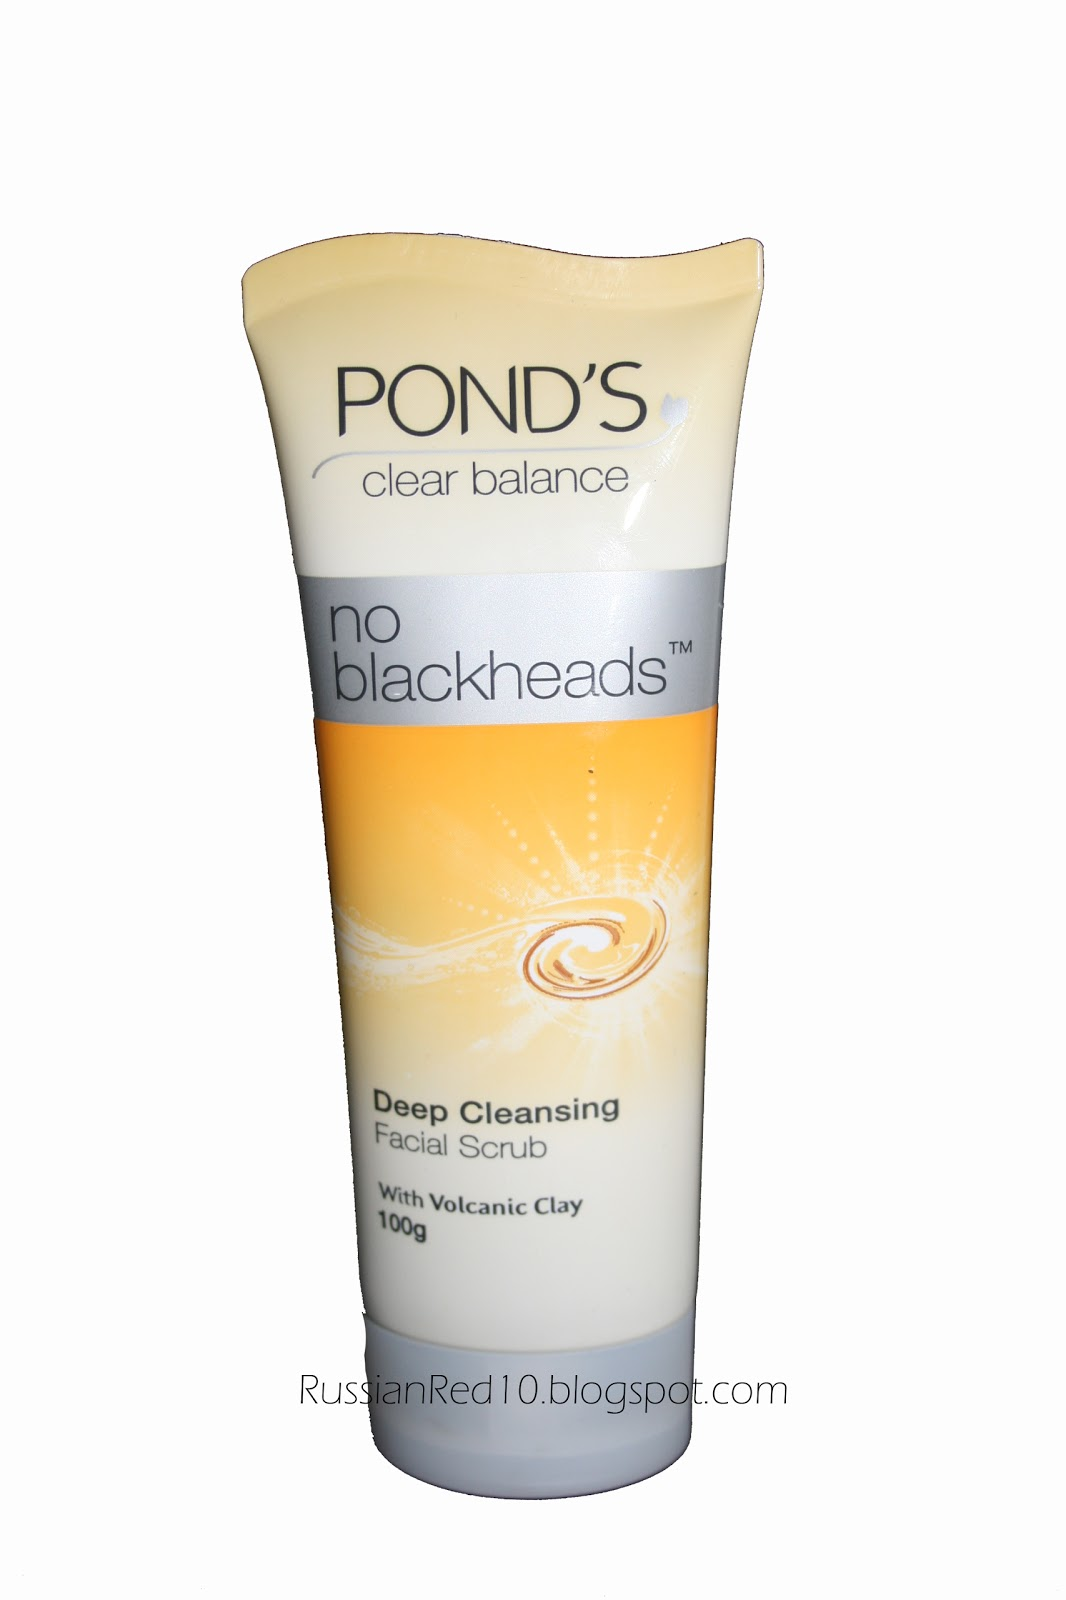 Ponds facial products